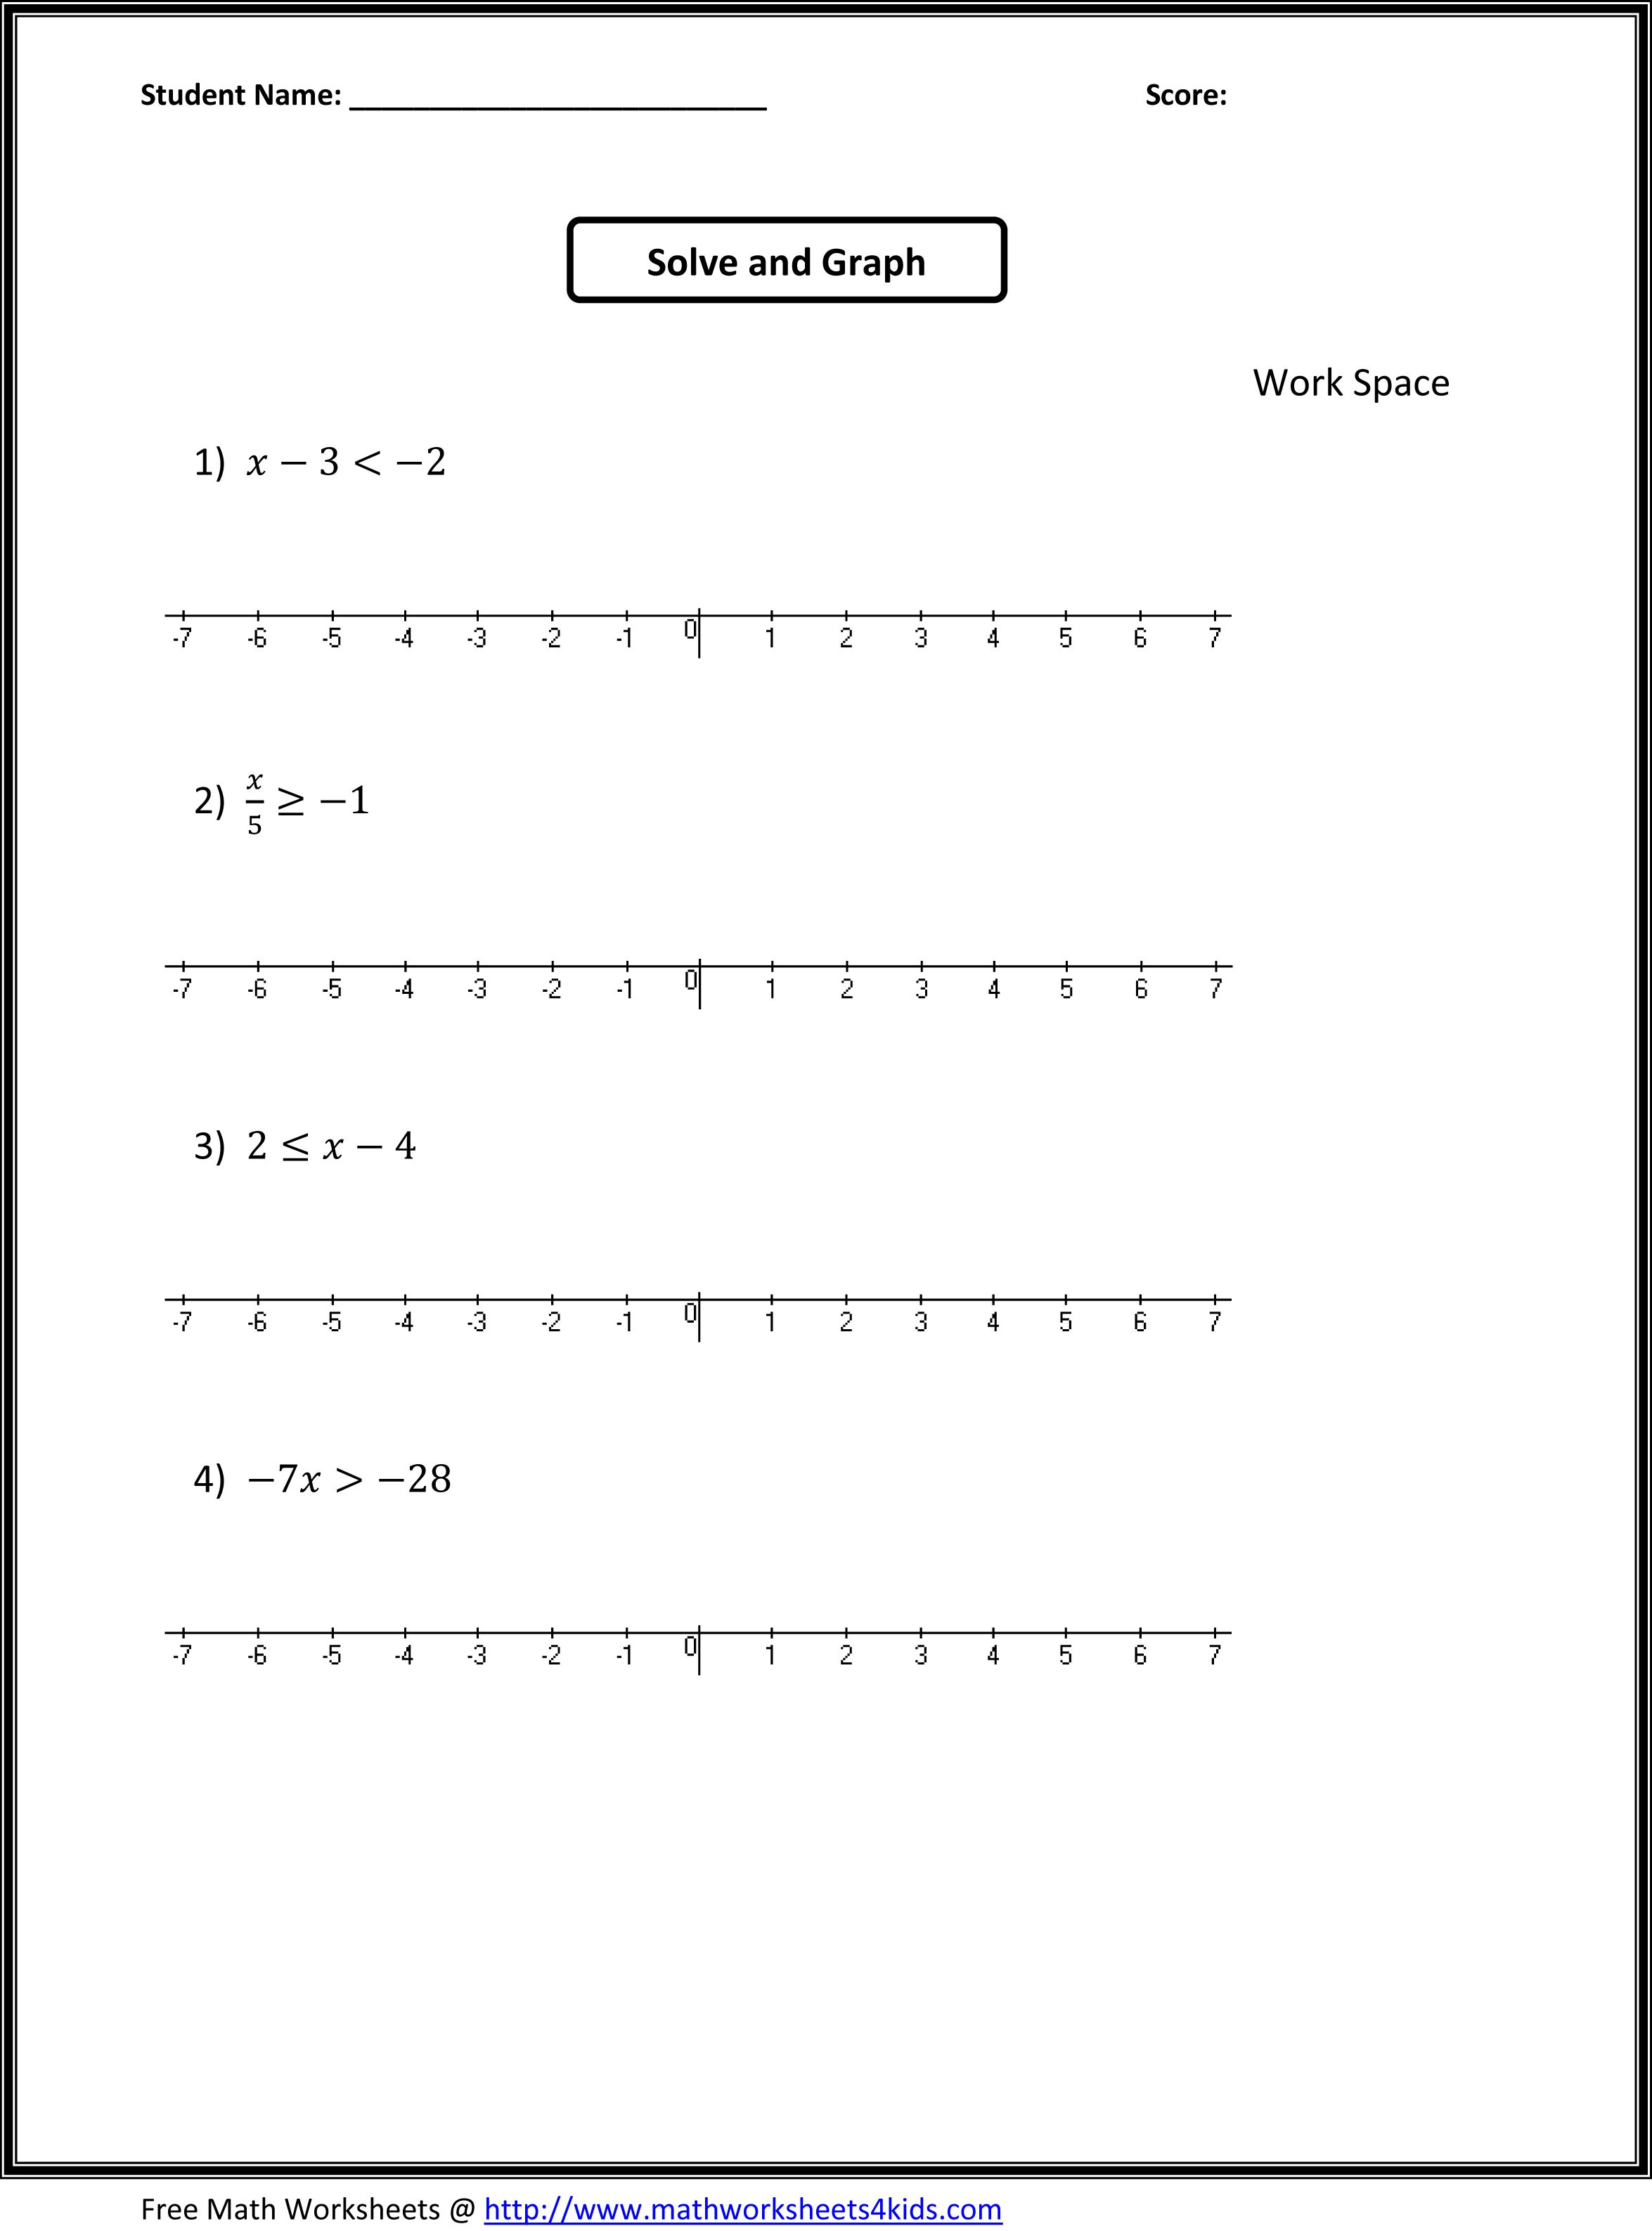 Printables 7th Math Worksheets printable 7th grade math worksheets syndeomedia 1000 images about on pinterest activities fractions worksheets